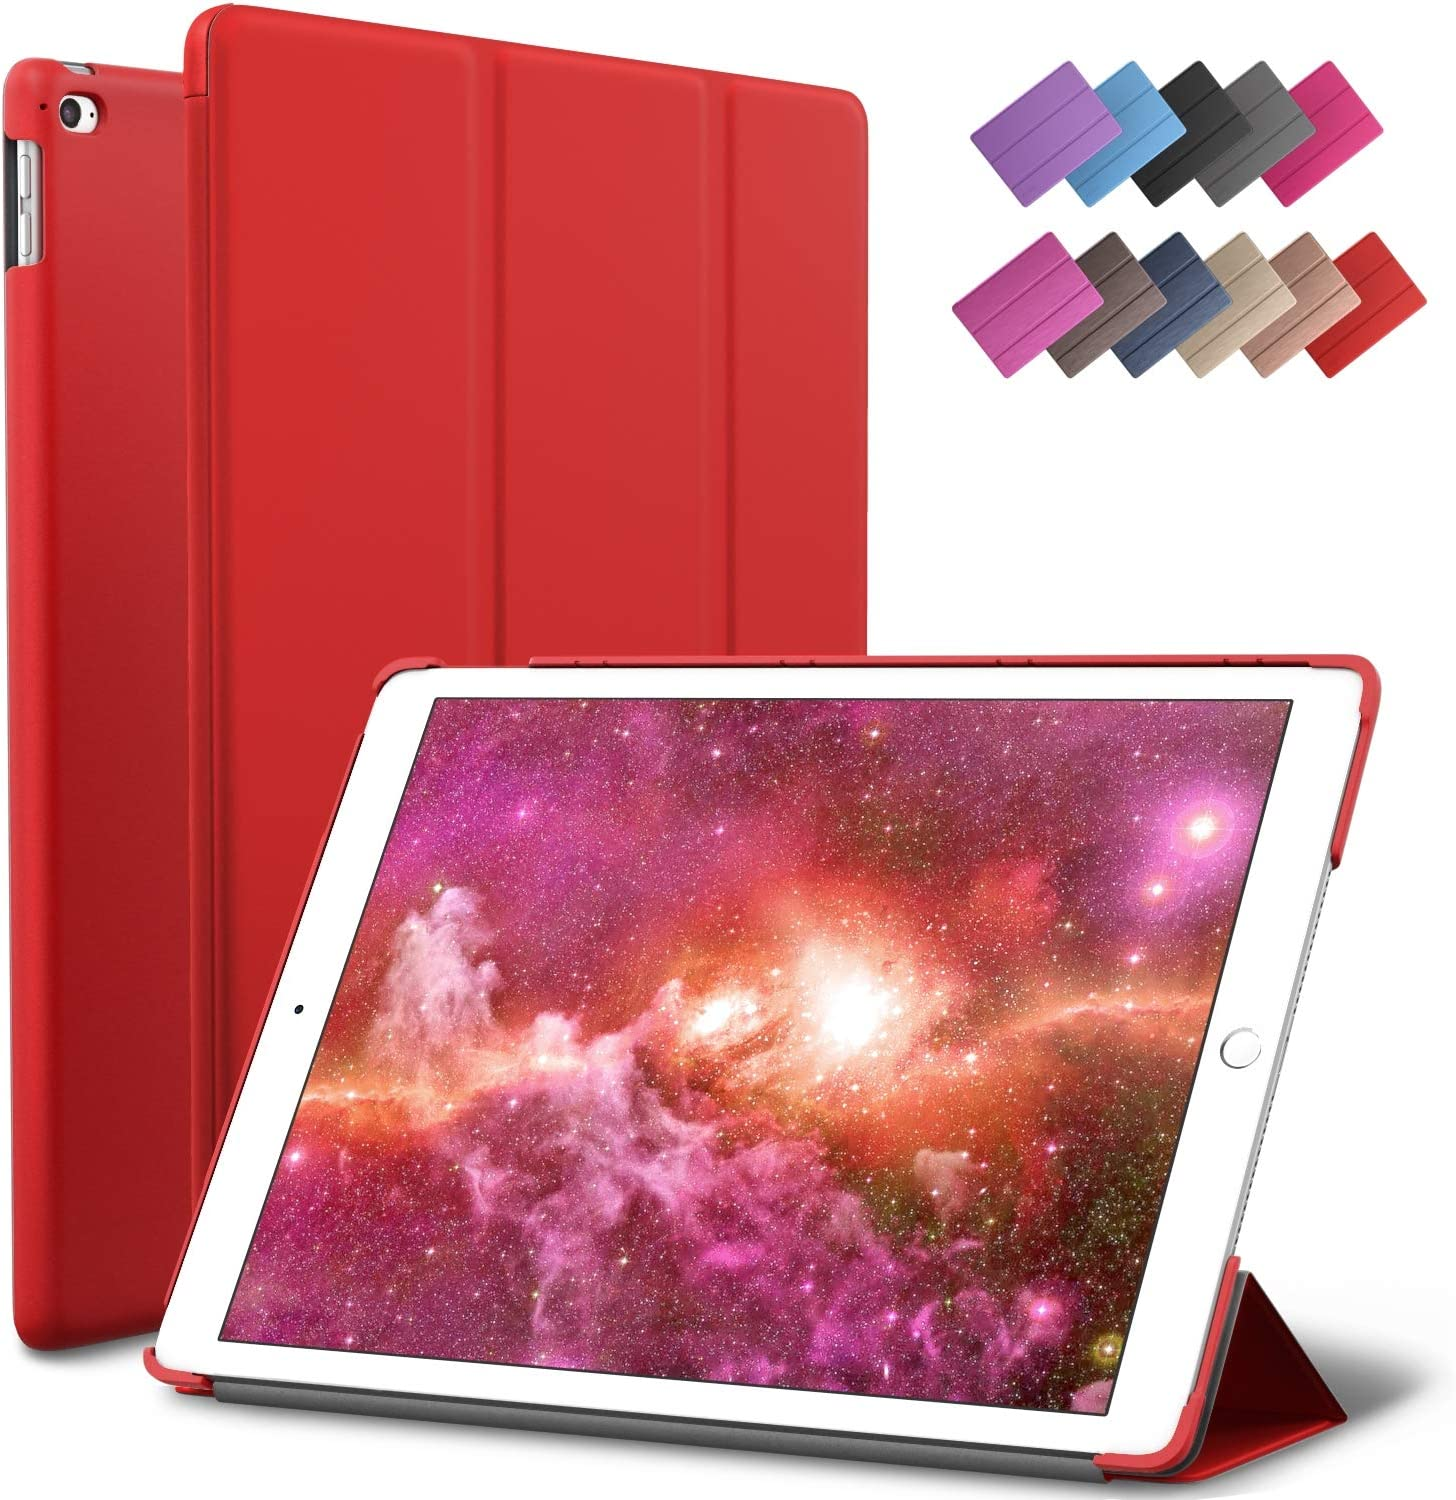 ROARTZ iPad Mini 4 case, Red Slim Fit Smart Rubber Coated Folio Case Hard Cover Light-Weight Auto Wake/Sleep for Apple iPad Mini 4th Generation Model A1538/A1550 Retina Display